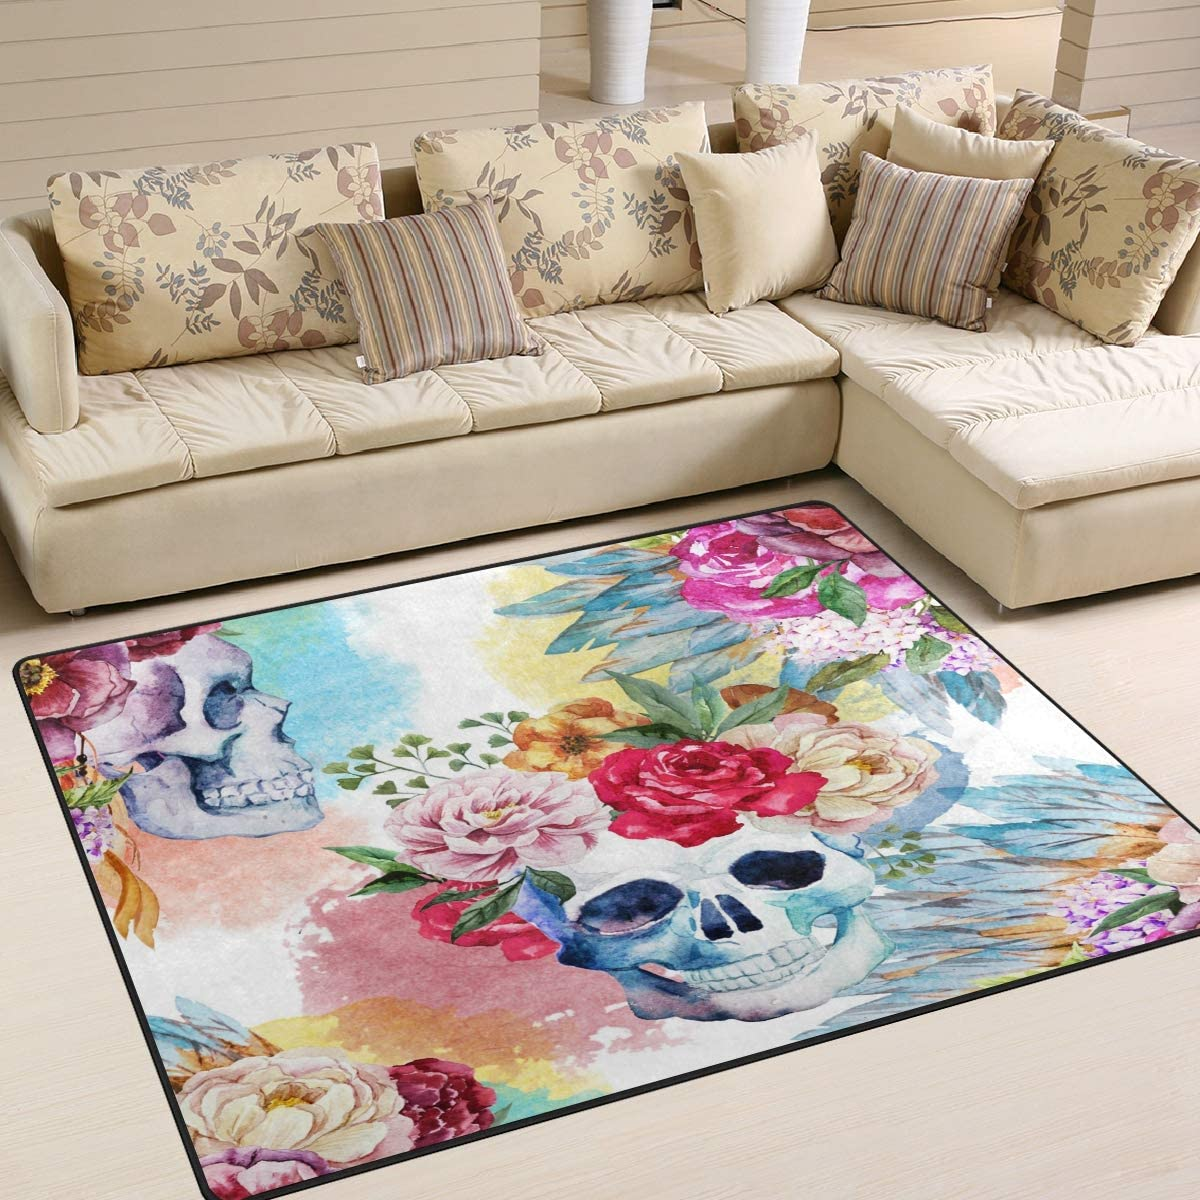 ALAZA Floral Flower Sugar Skull Watercolor Area Rug Rugs for Living Room Bedroom 7 x 5